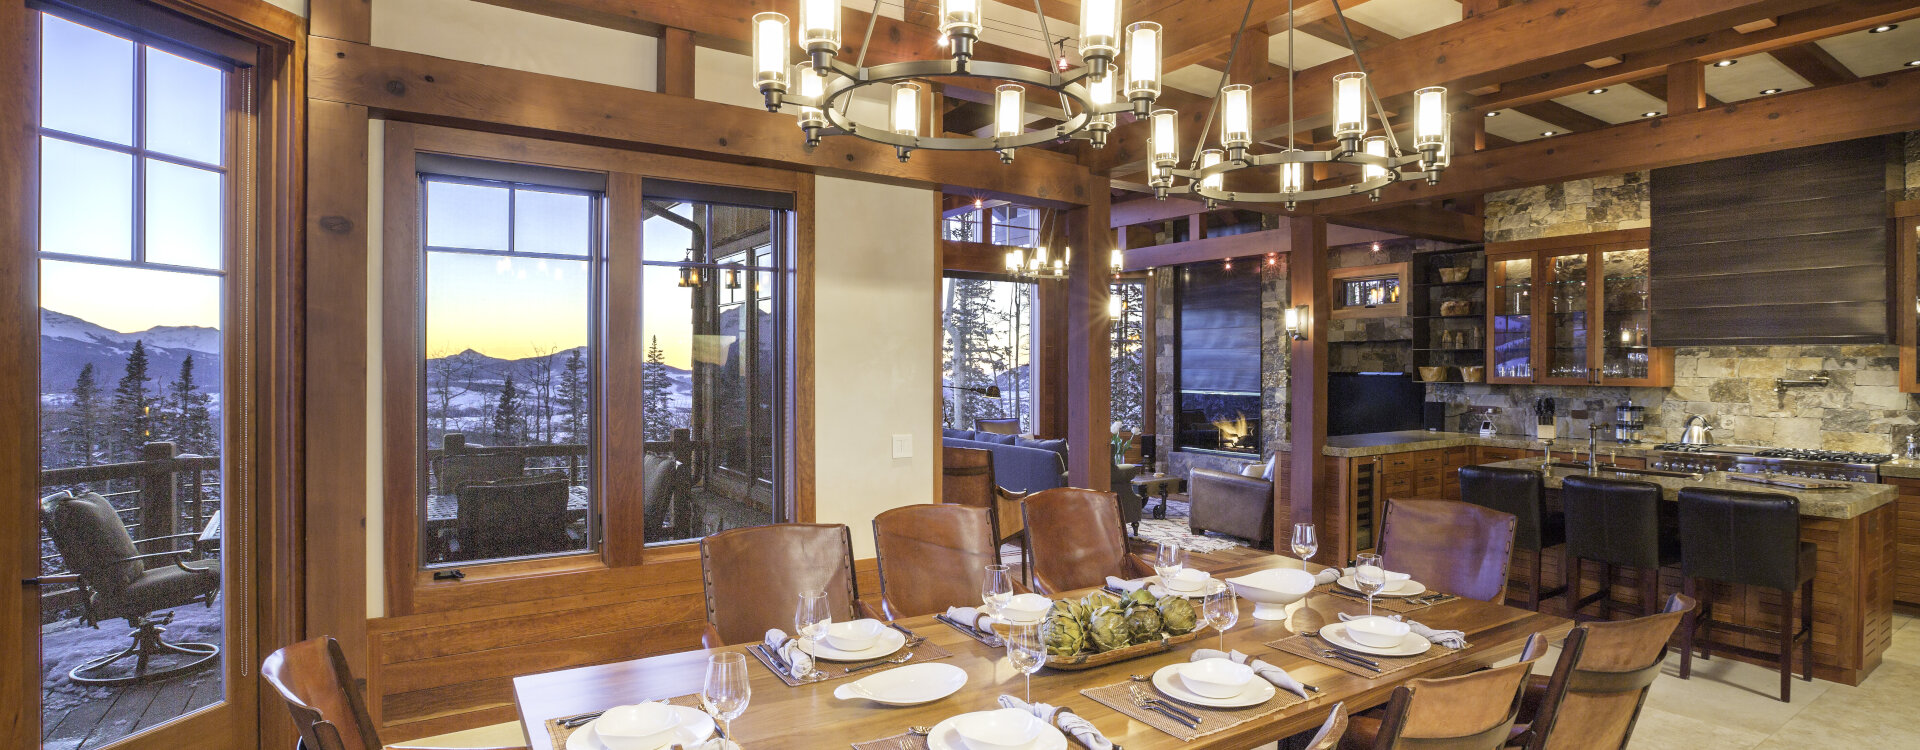 2.01-telluride-cabin-on-the-ridge-dining-room-view-lone-cone